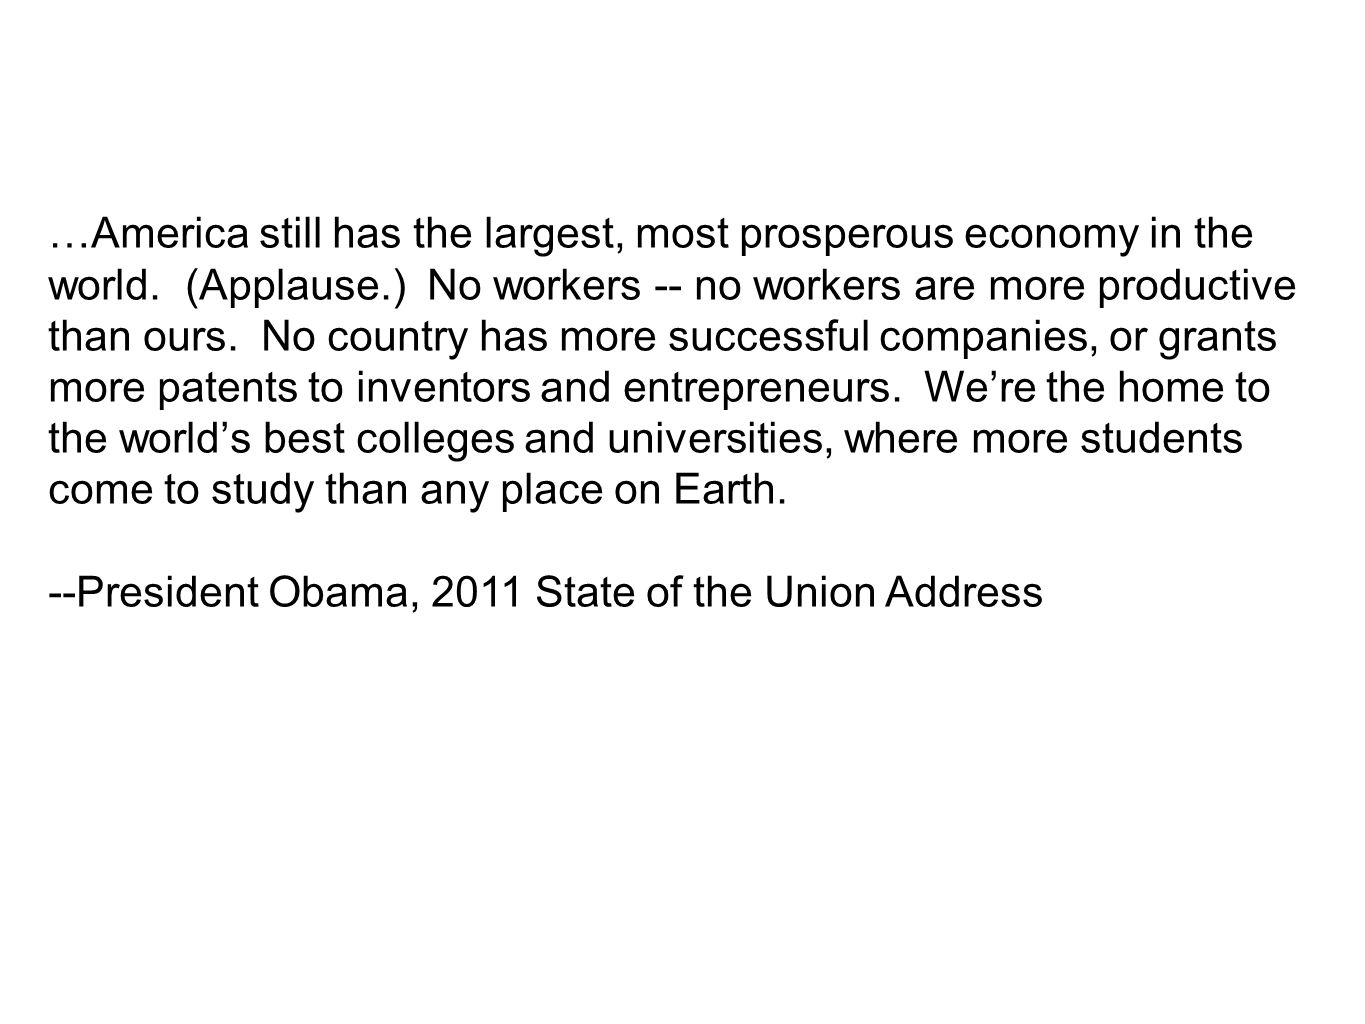 …America still has the largest, most prosperous economy in the world